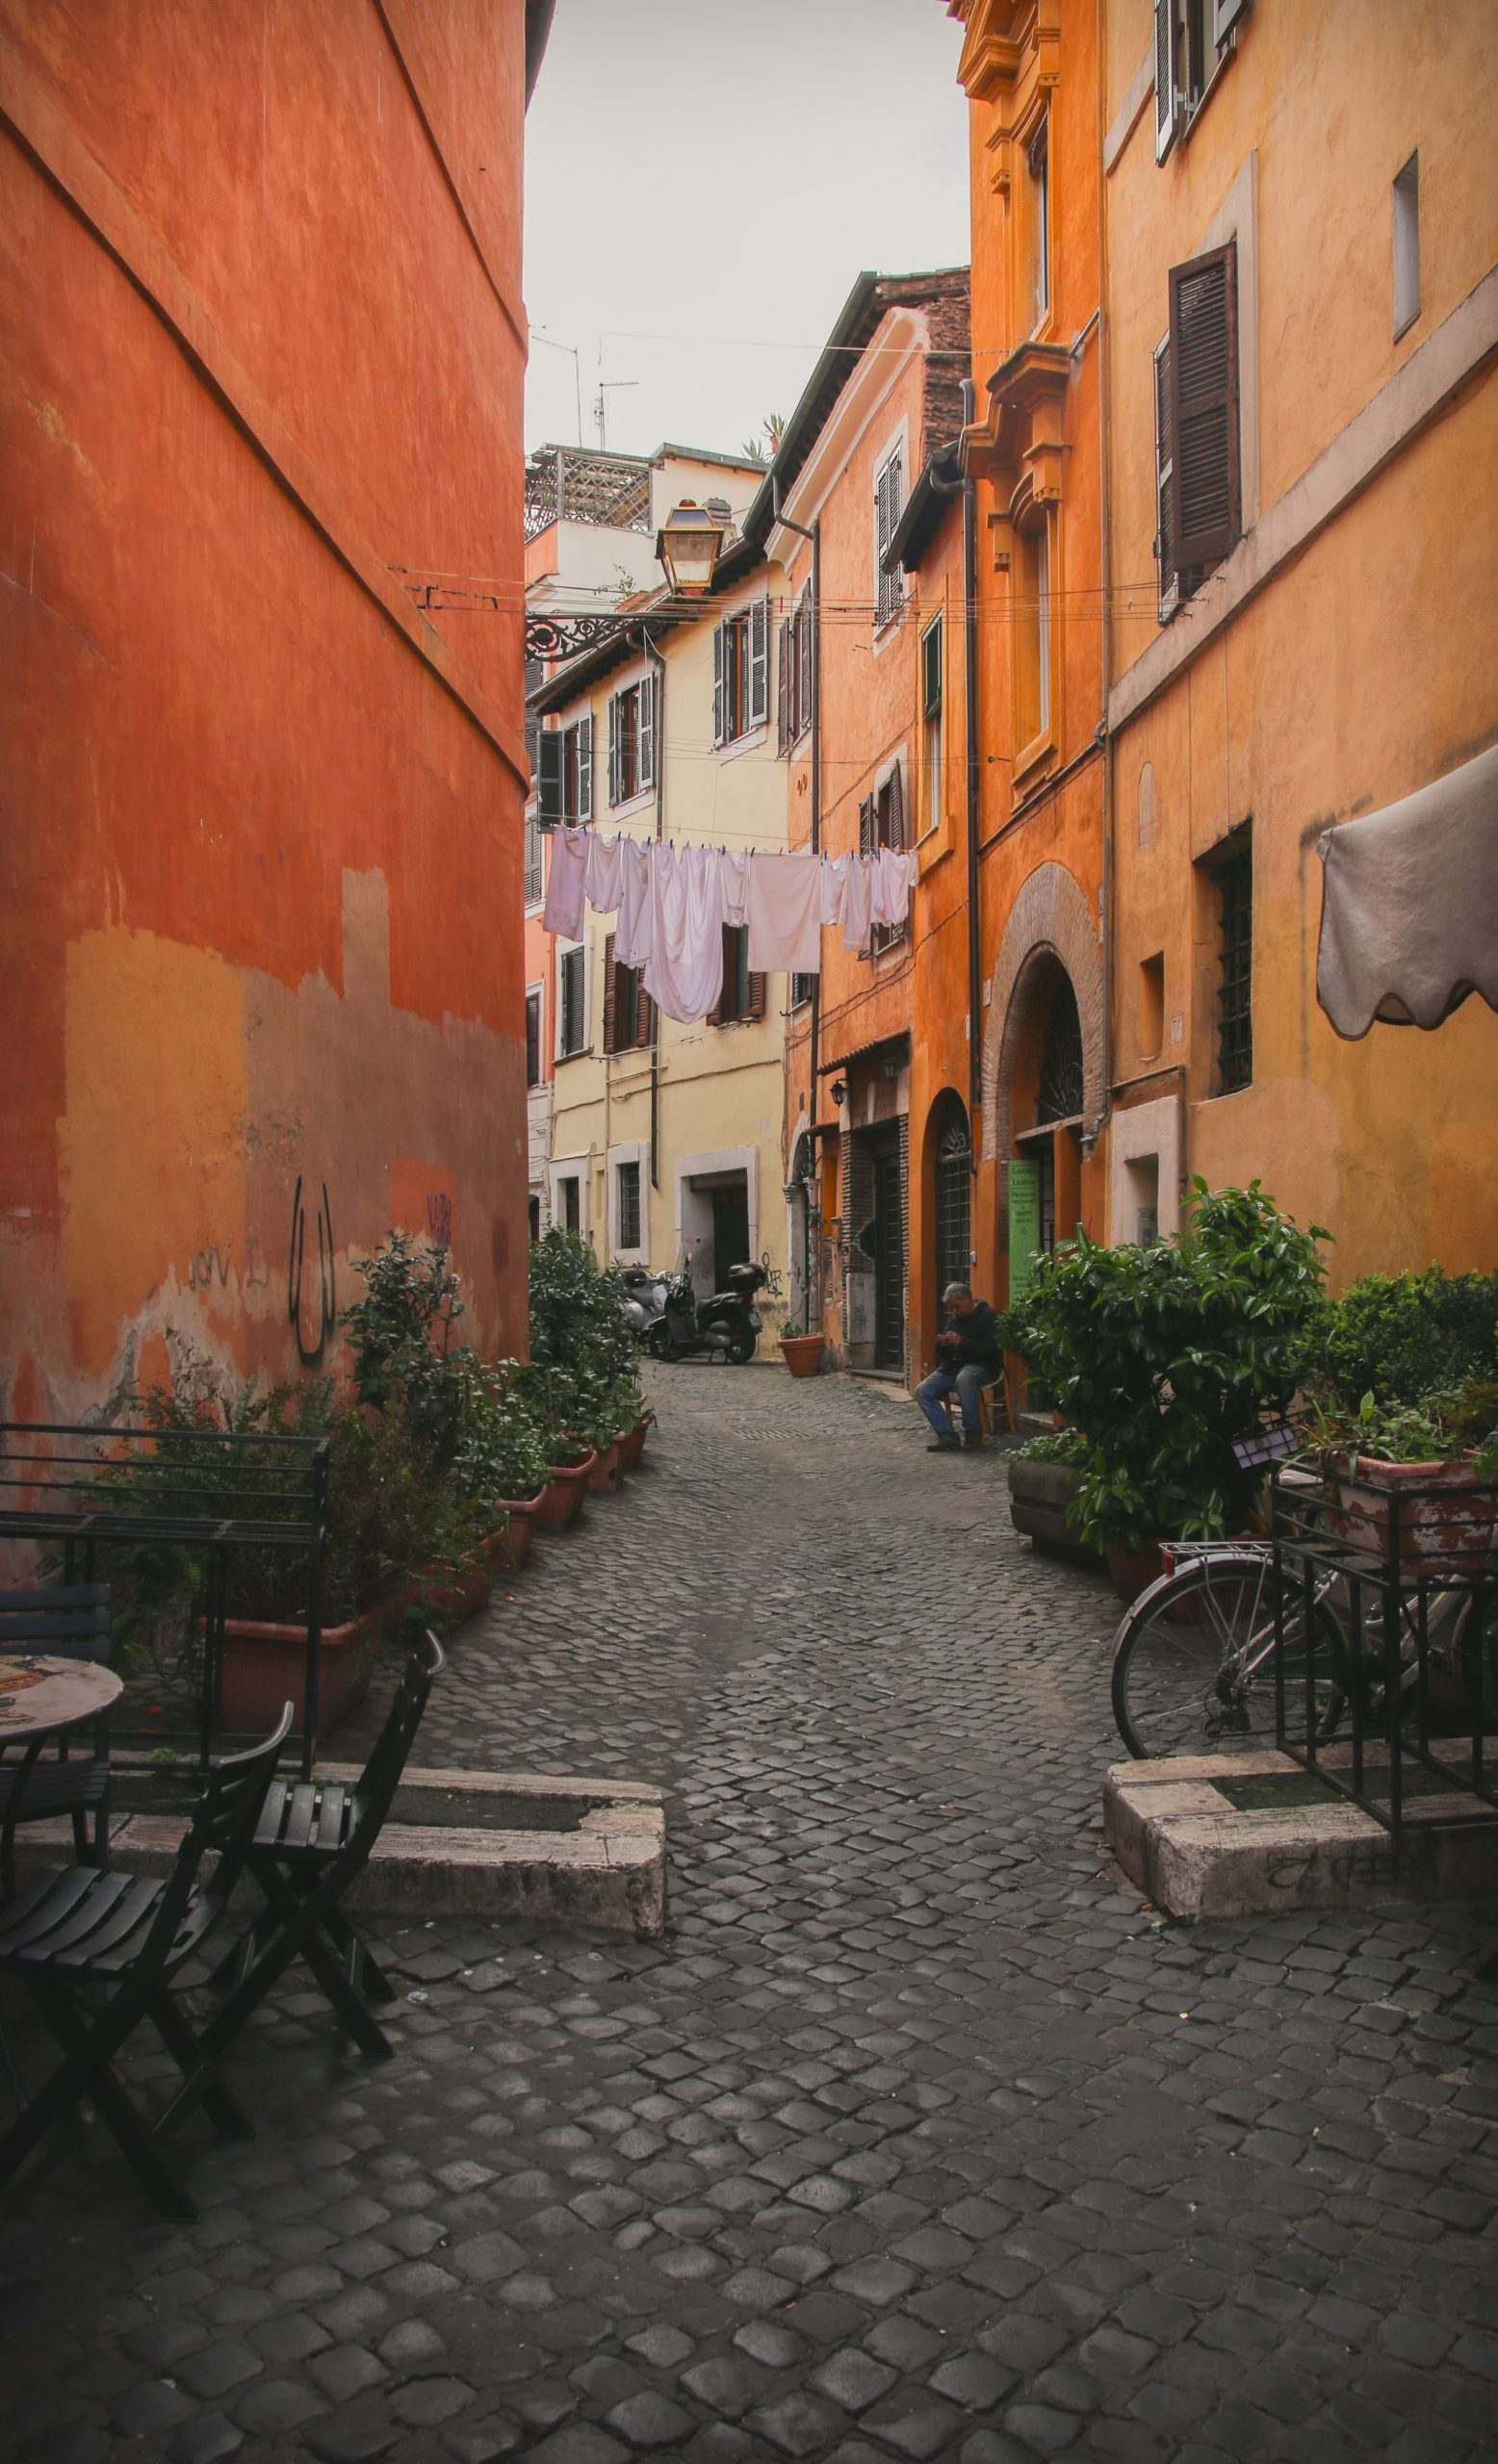 Cobblestone street with orange buildings and hanging laundry in Trastevere, Italy.